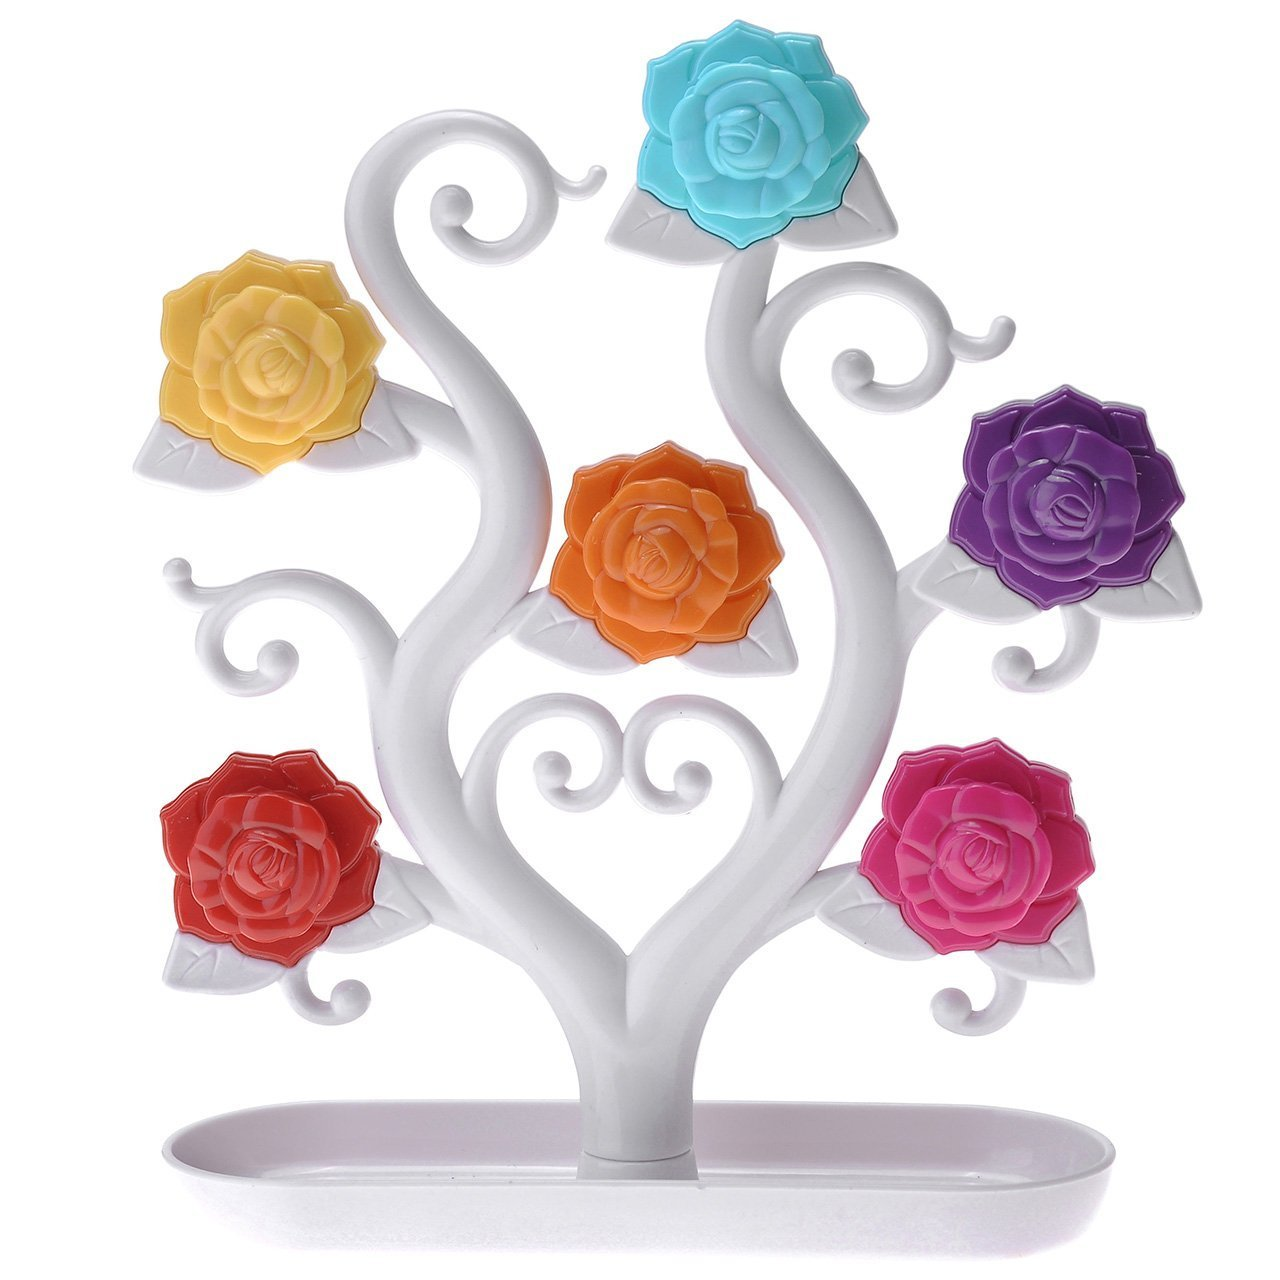 Yoption Jewelry Rack, Creative Magnetic Rose Tree Plastic Jewelry Storage Rack Display Stand Holder Organizer for Earrings Necklace Ring (White)